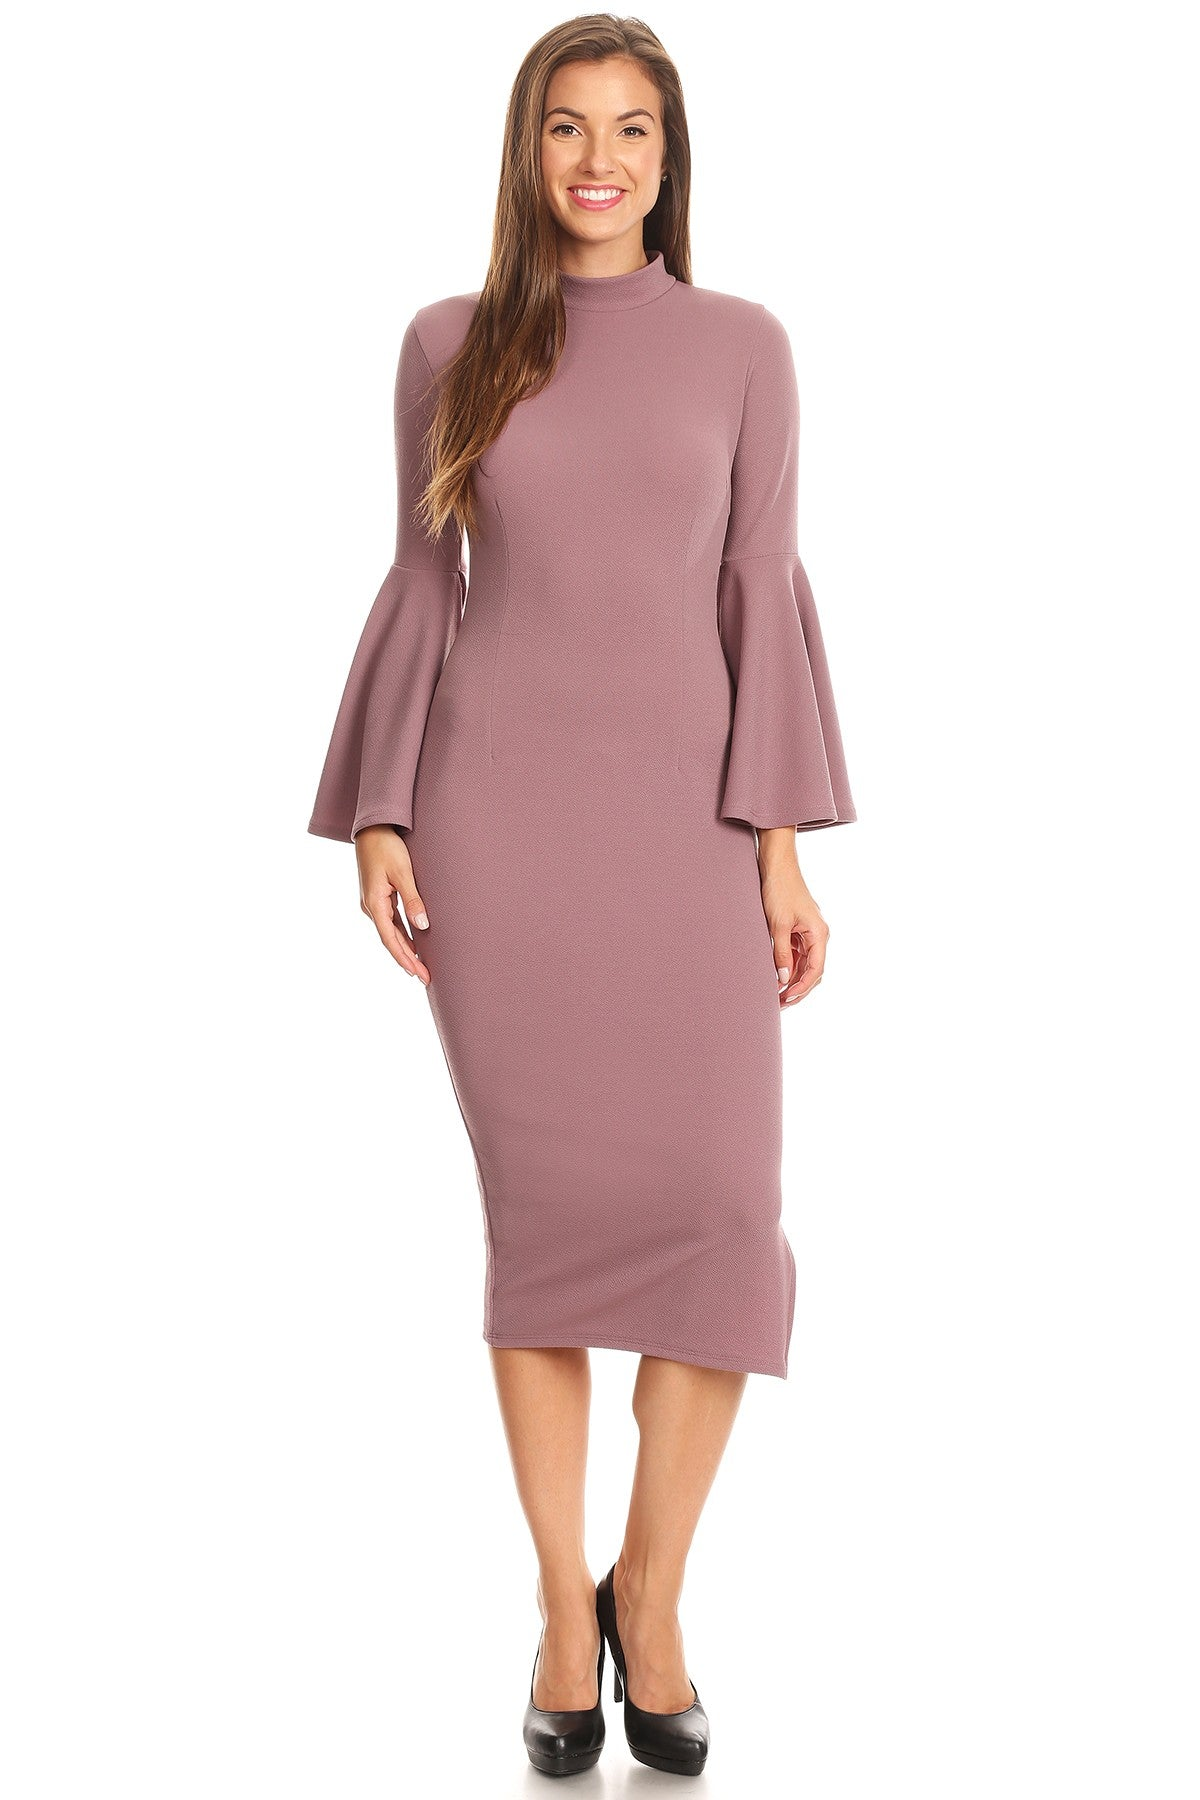 Valencia Dress -  Plum